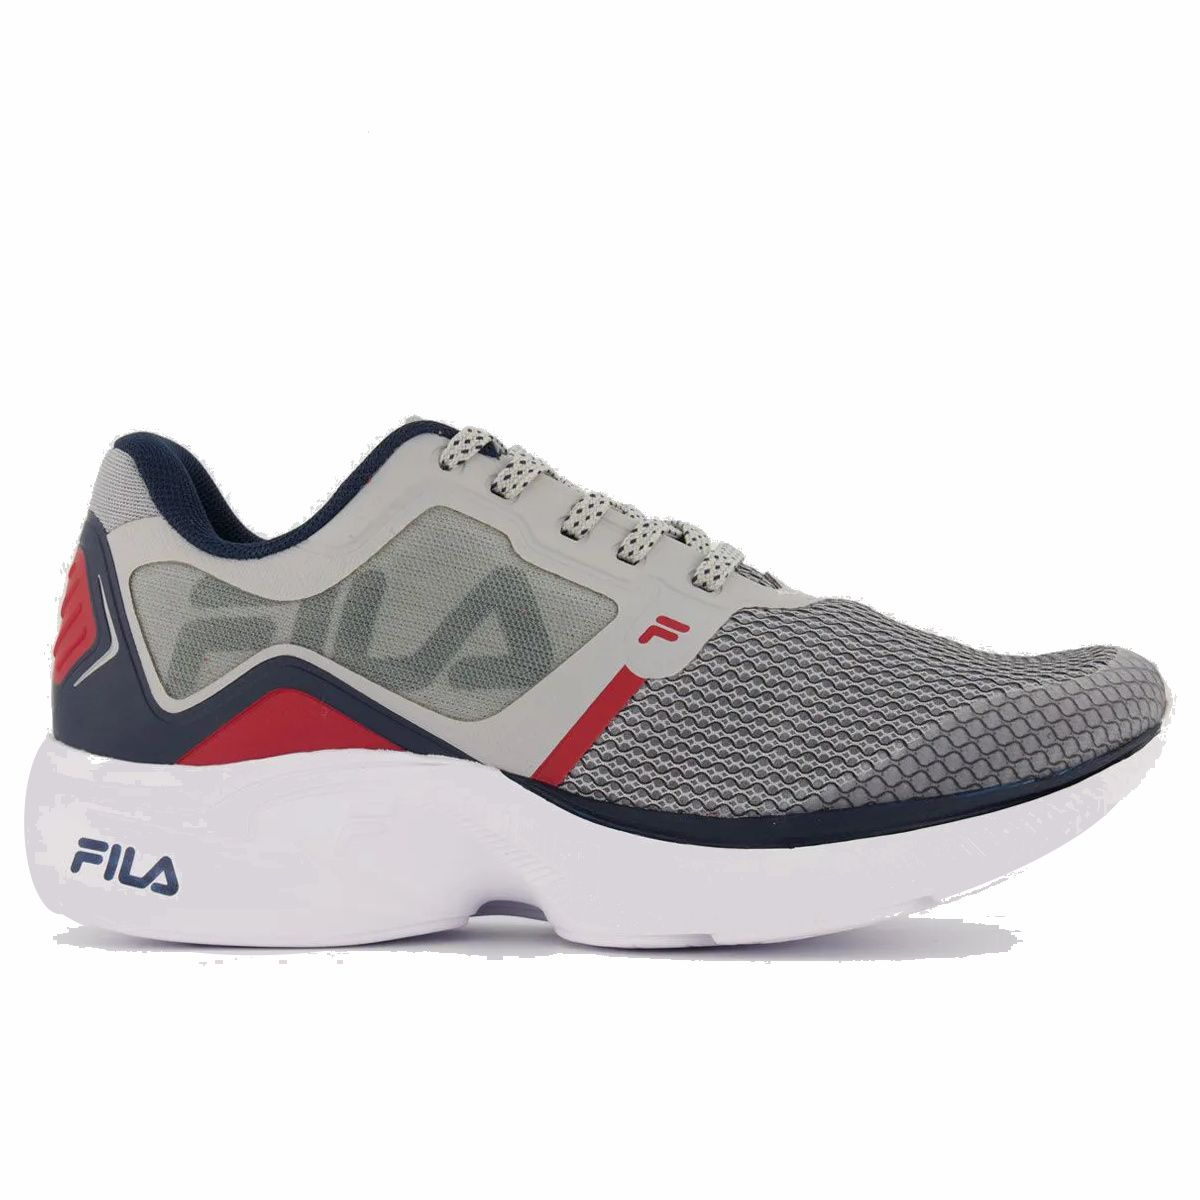 Tenis Fila Racer Move Masculino Running Training